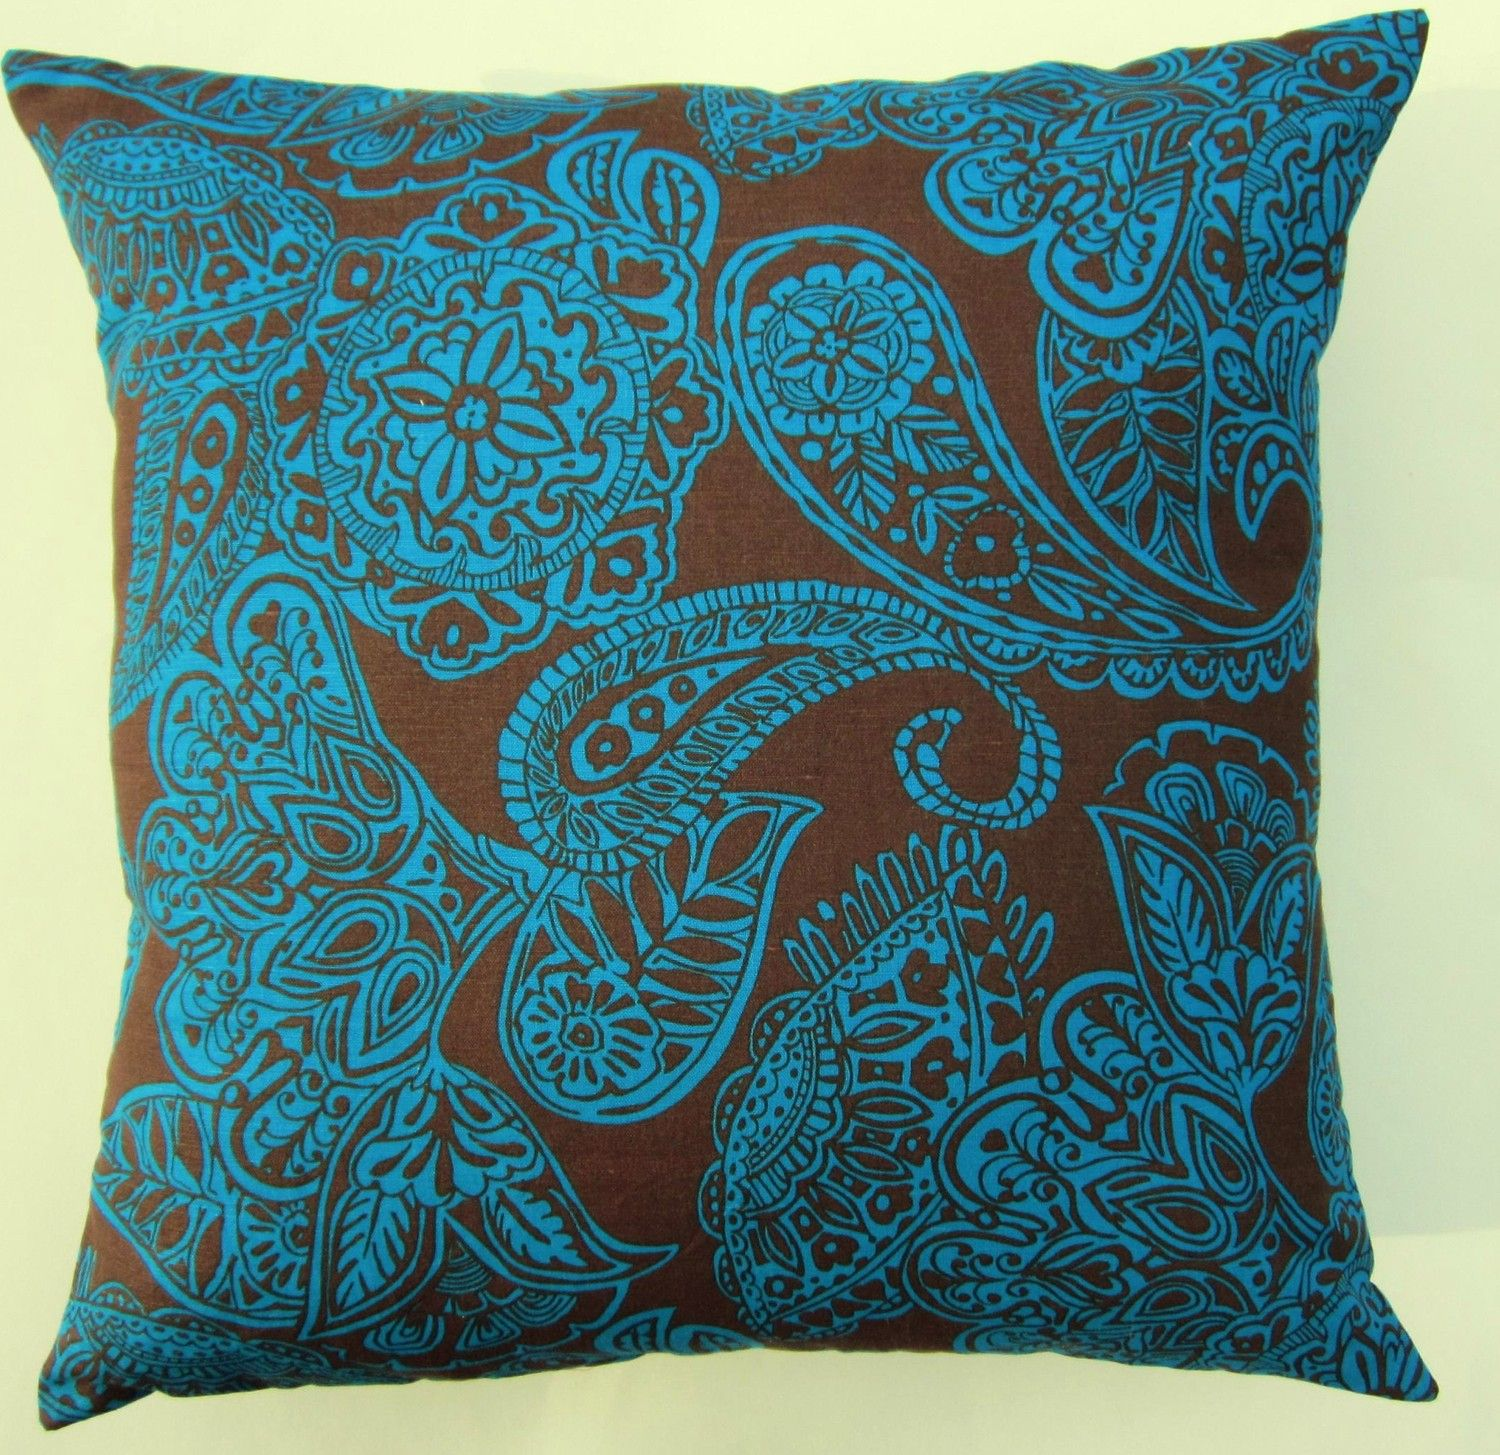 Brown and teal throw pillows - Chocolate Brown And Turquoise Blue Paisley Throw Pillow Cover 16 X 16